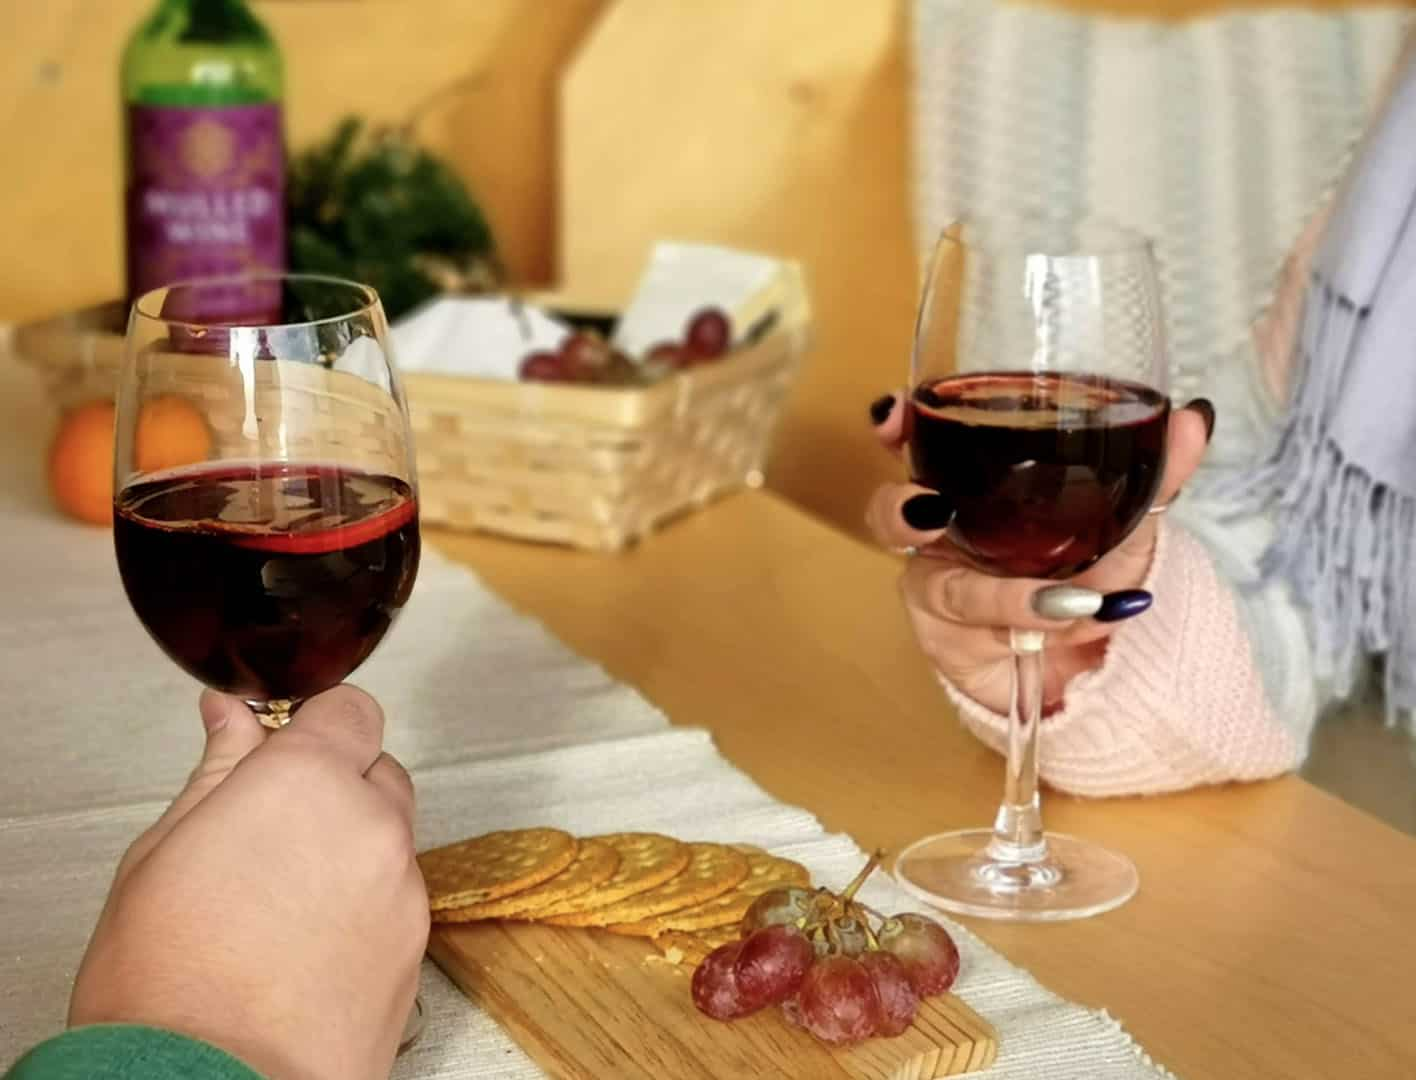 Two guests enjoying a glass of red win and a cheese board for winter